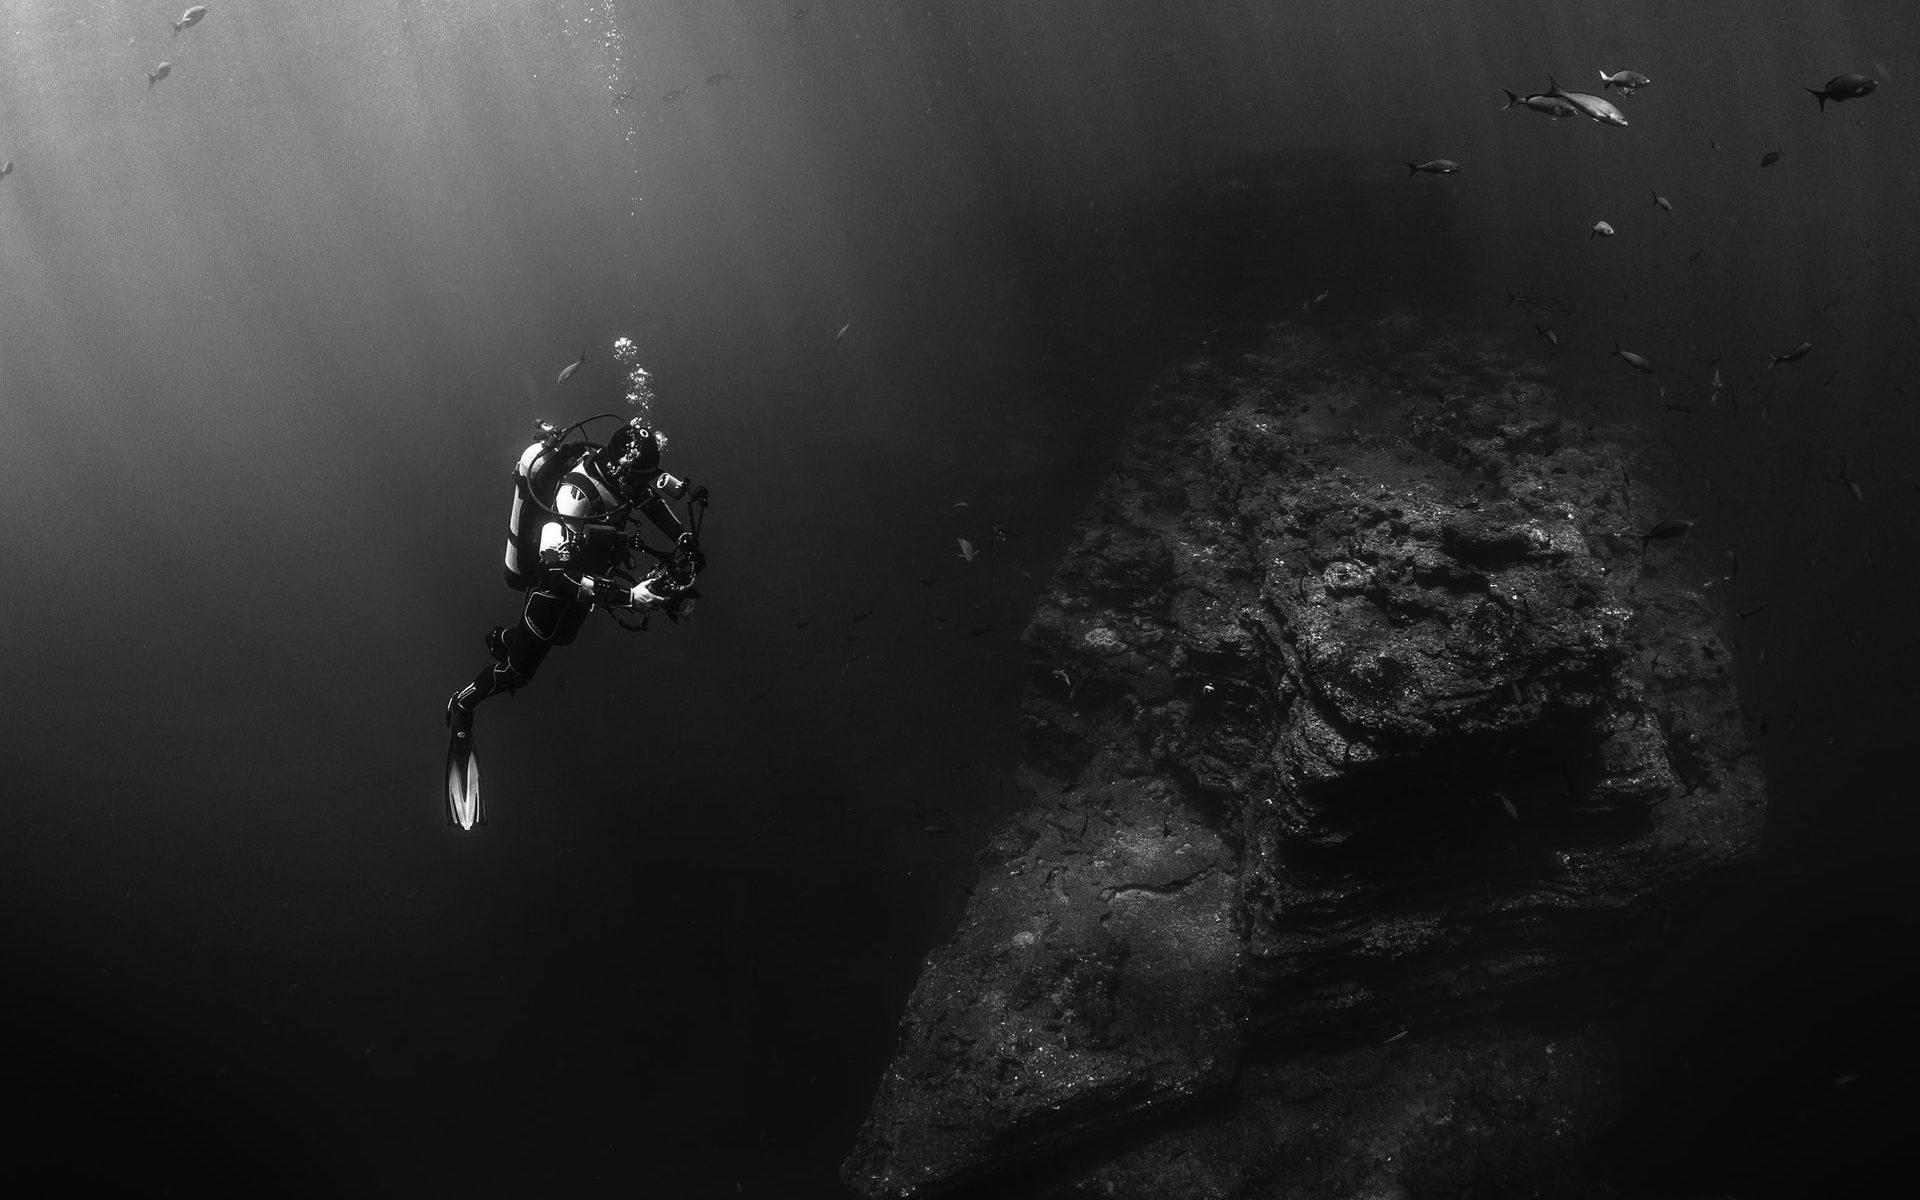 How Long Can Scuba Divers Stay Underwater